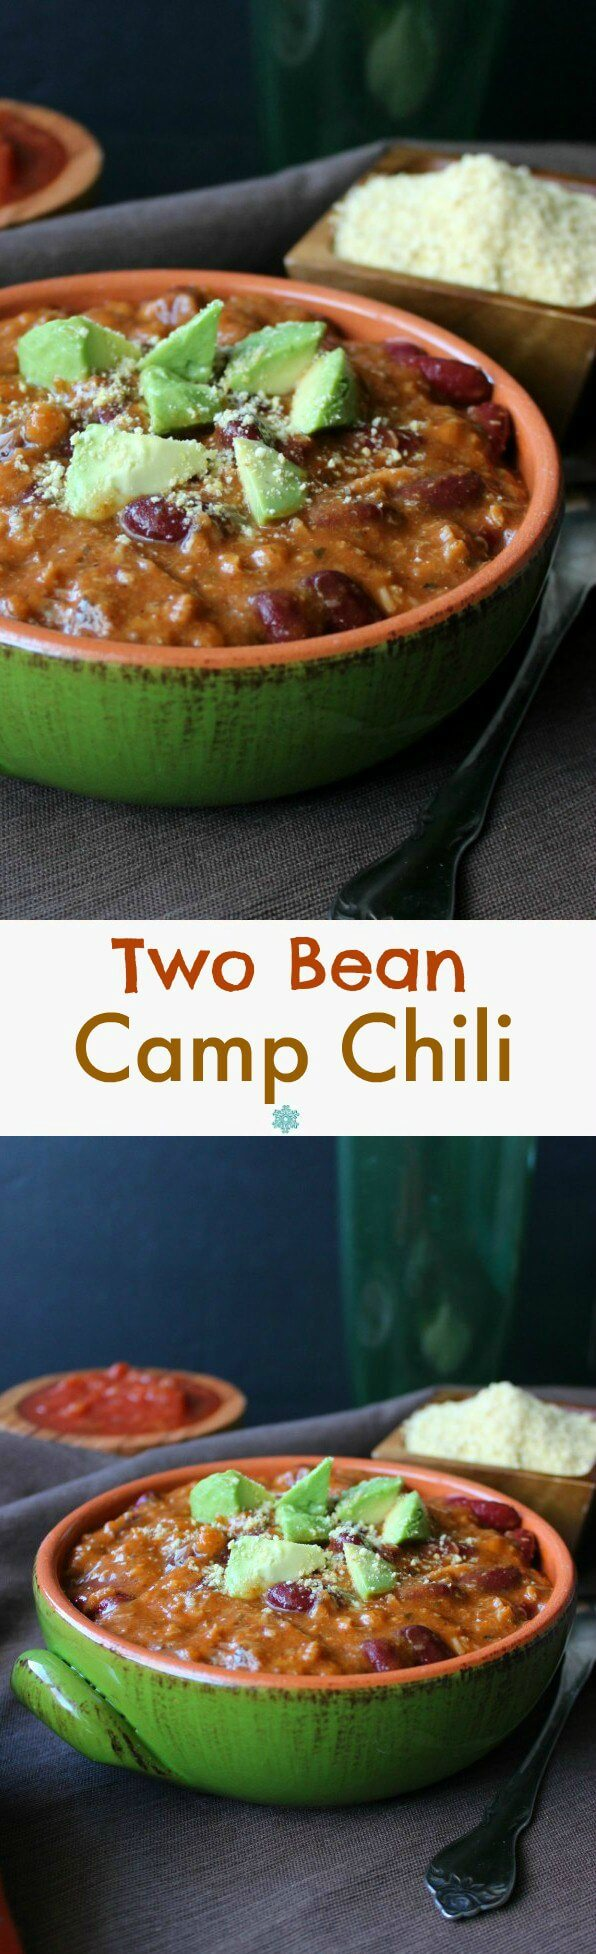 Two Bean Camp Chili is a fun main or side dish that can enhance any meal or party. It has deep rich flavors of homemade tomato sauce that is created and thickens as the big pot of chili cooks.